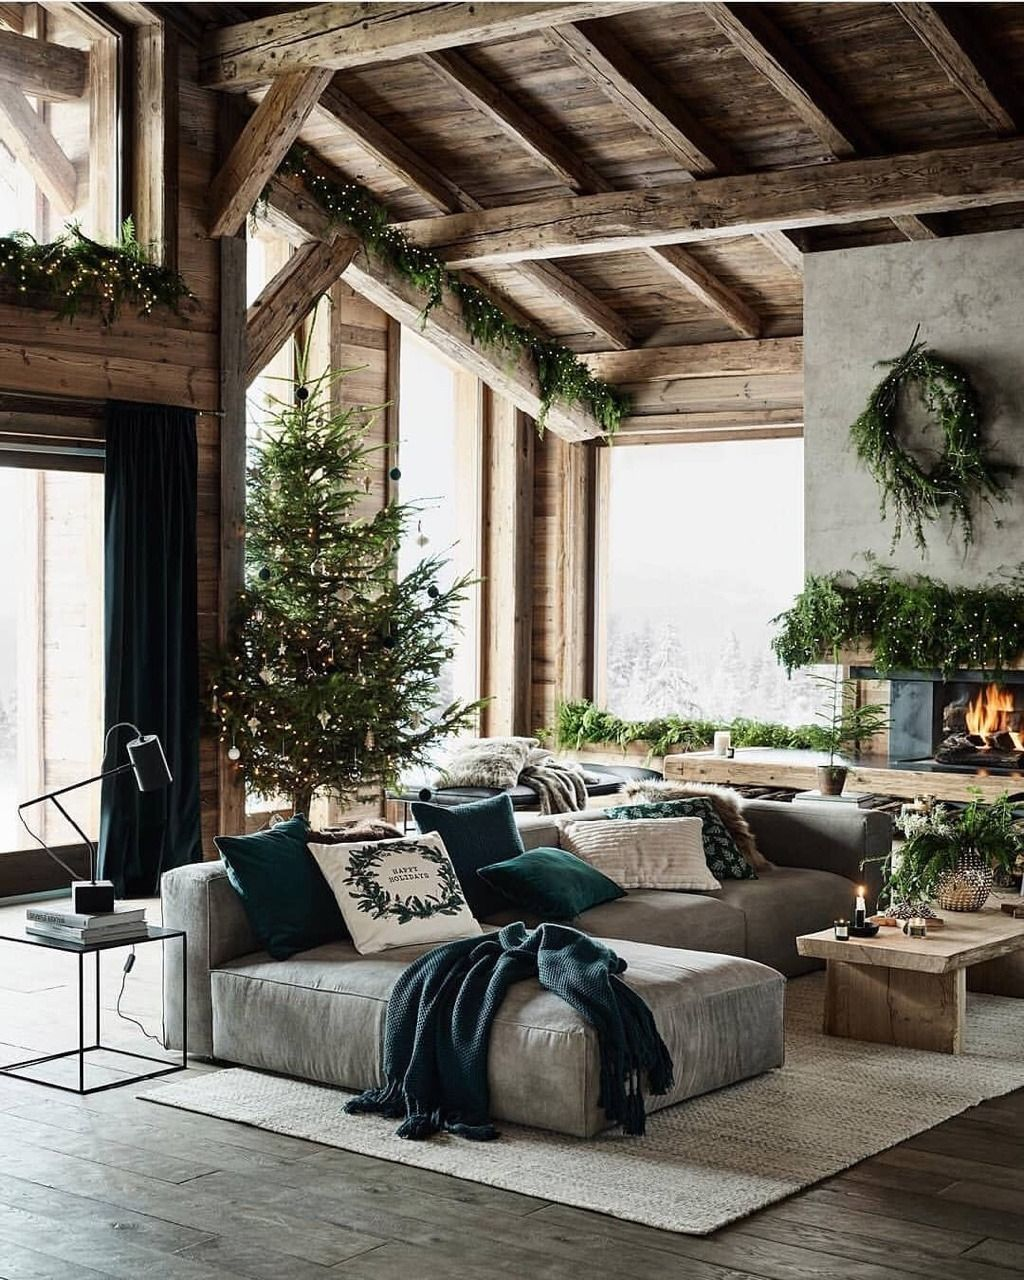 H And M Home Decor